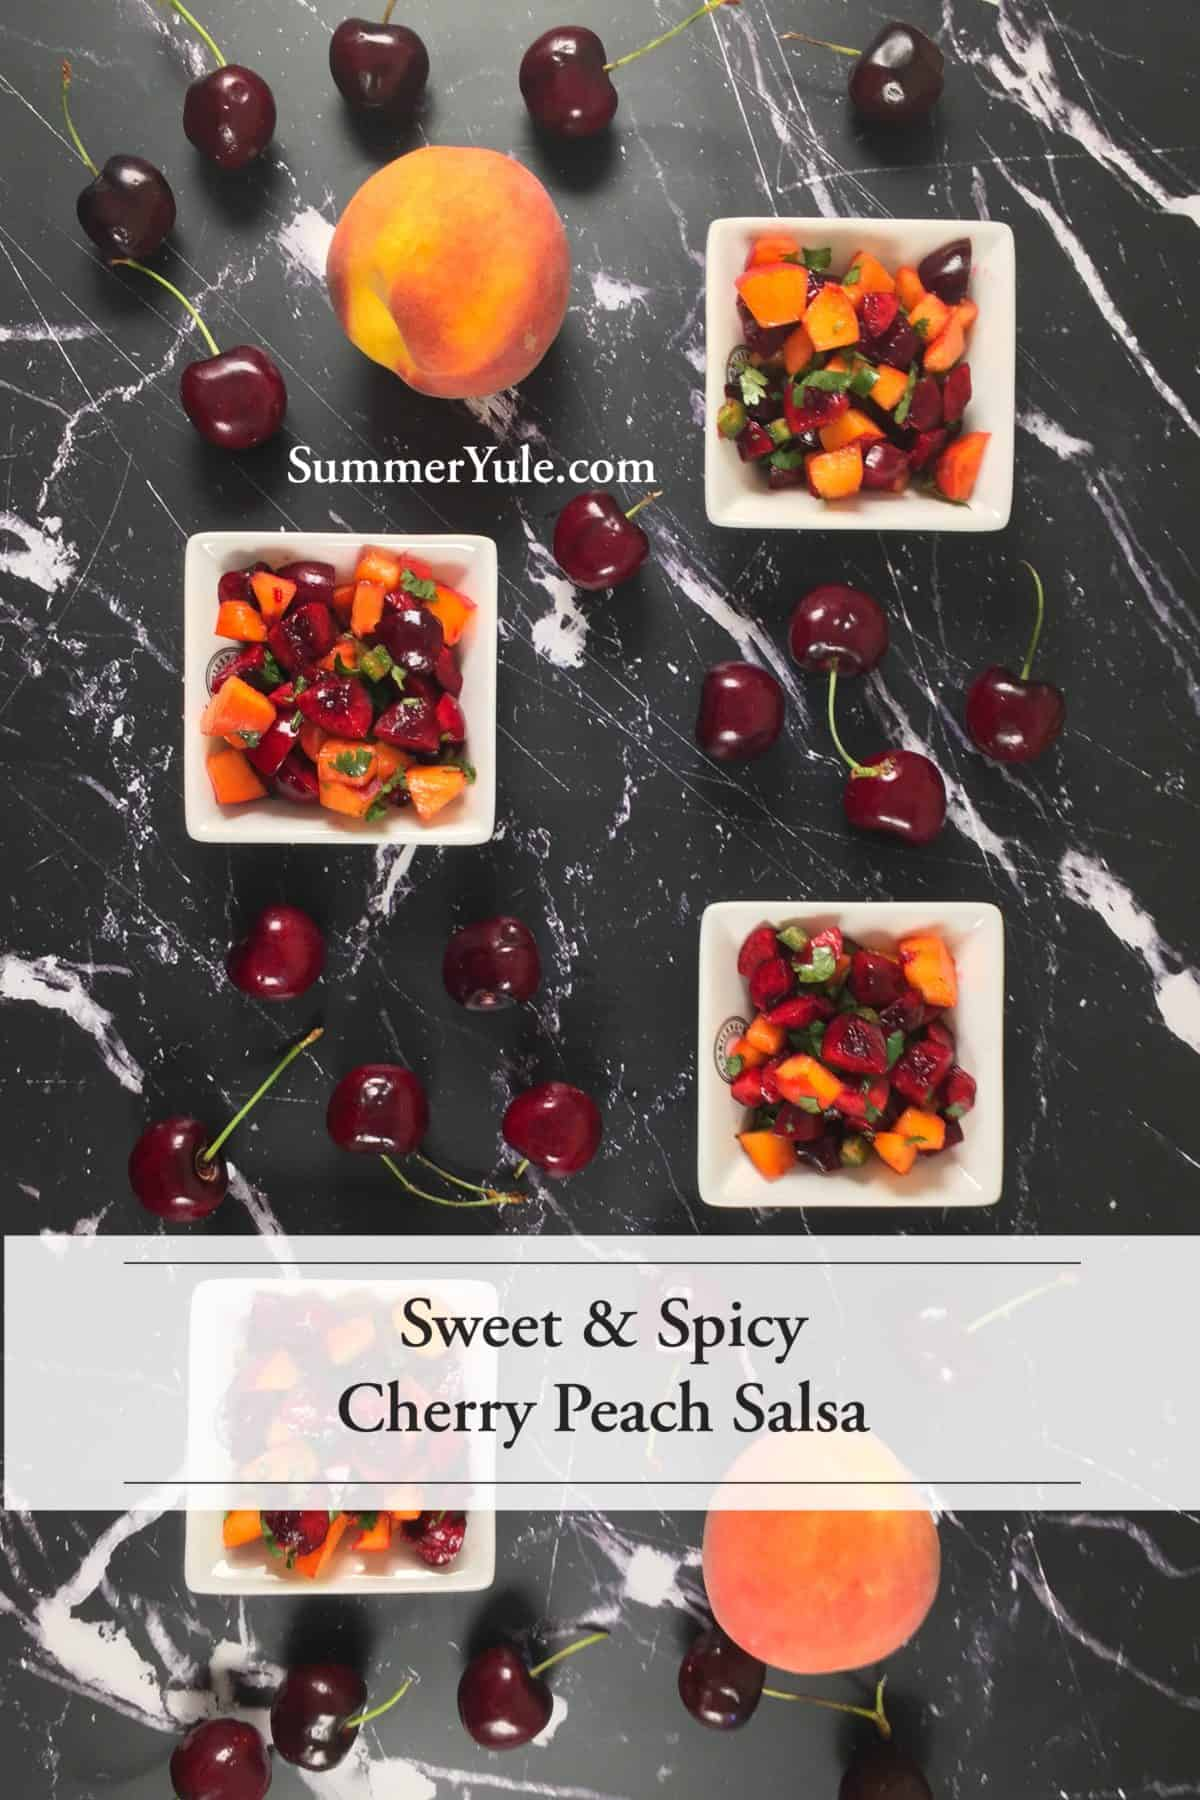 Cups of Sweet and Spicy Cherry Peach Salsa with whole peaches and cherries (long image for Pinterest)